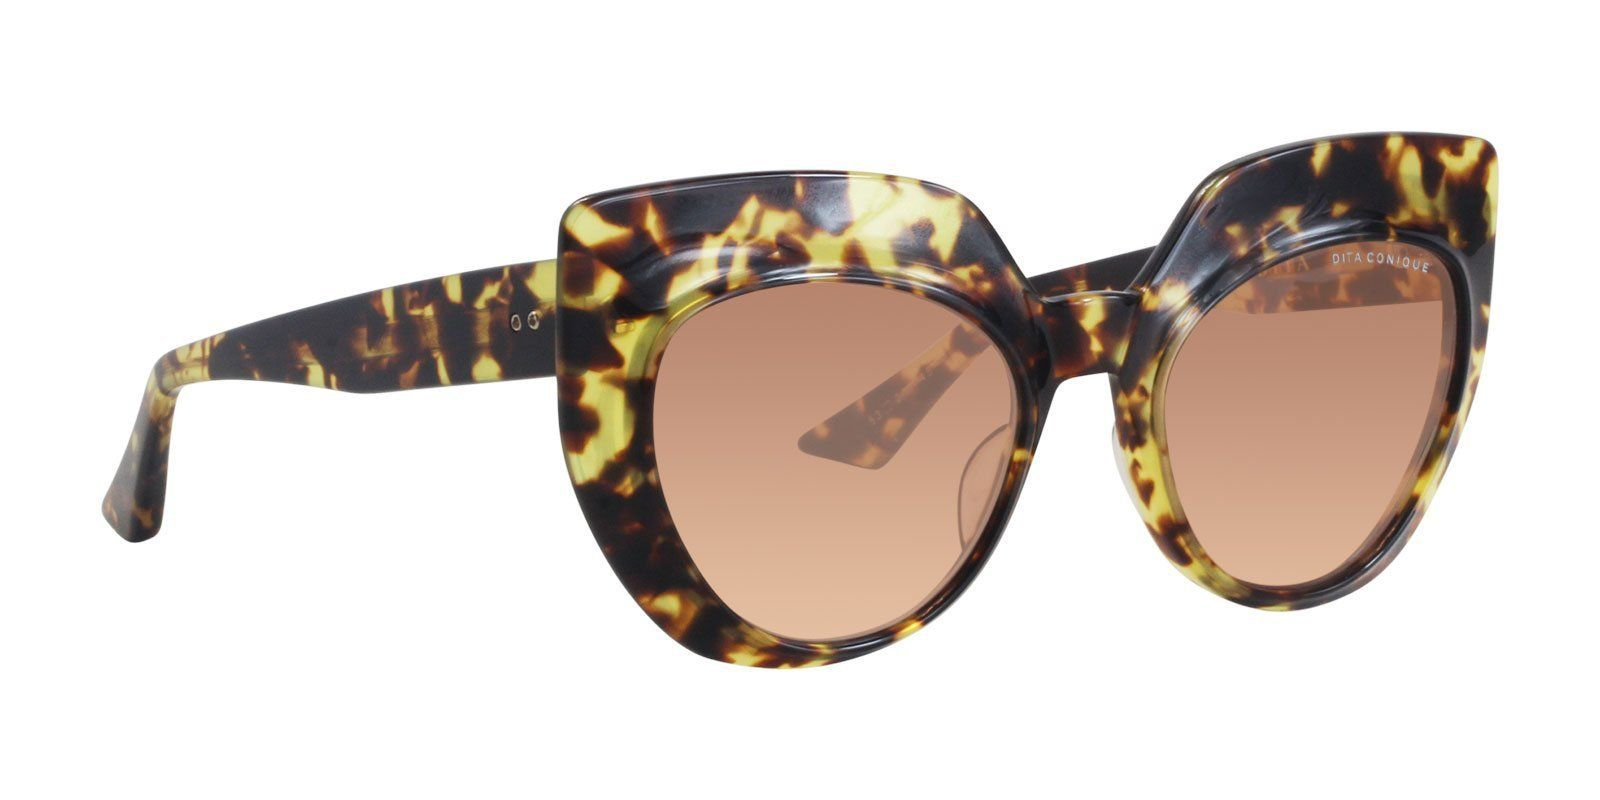 4799c09ffb4 Dita - CONIQUE TKT sunglasses